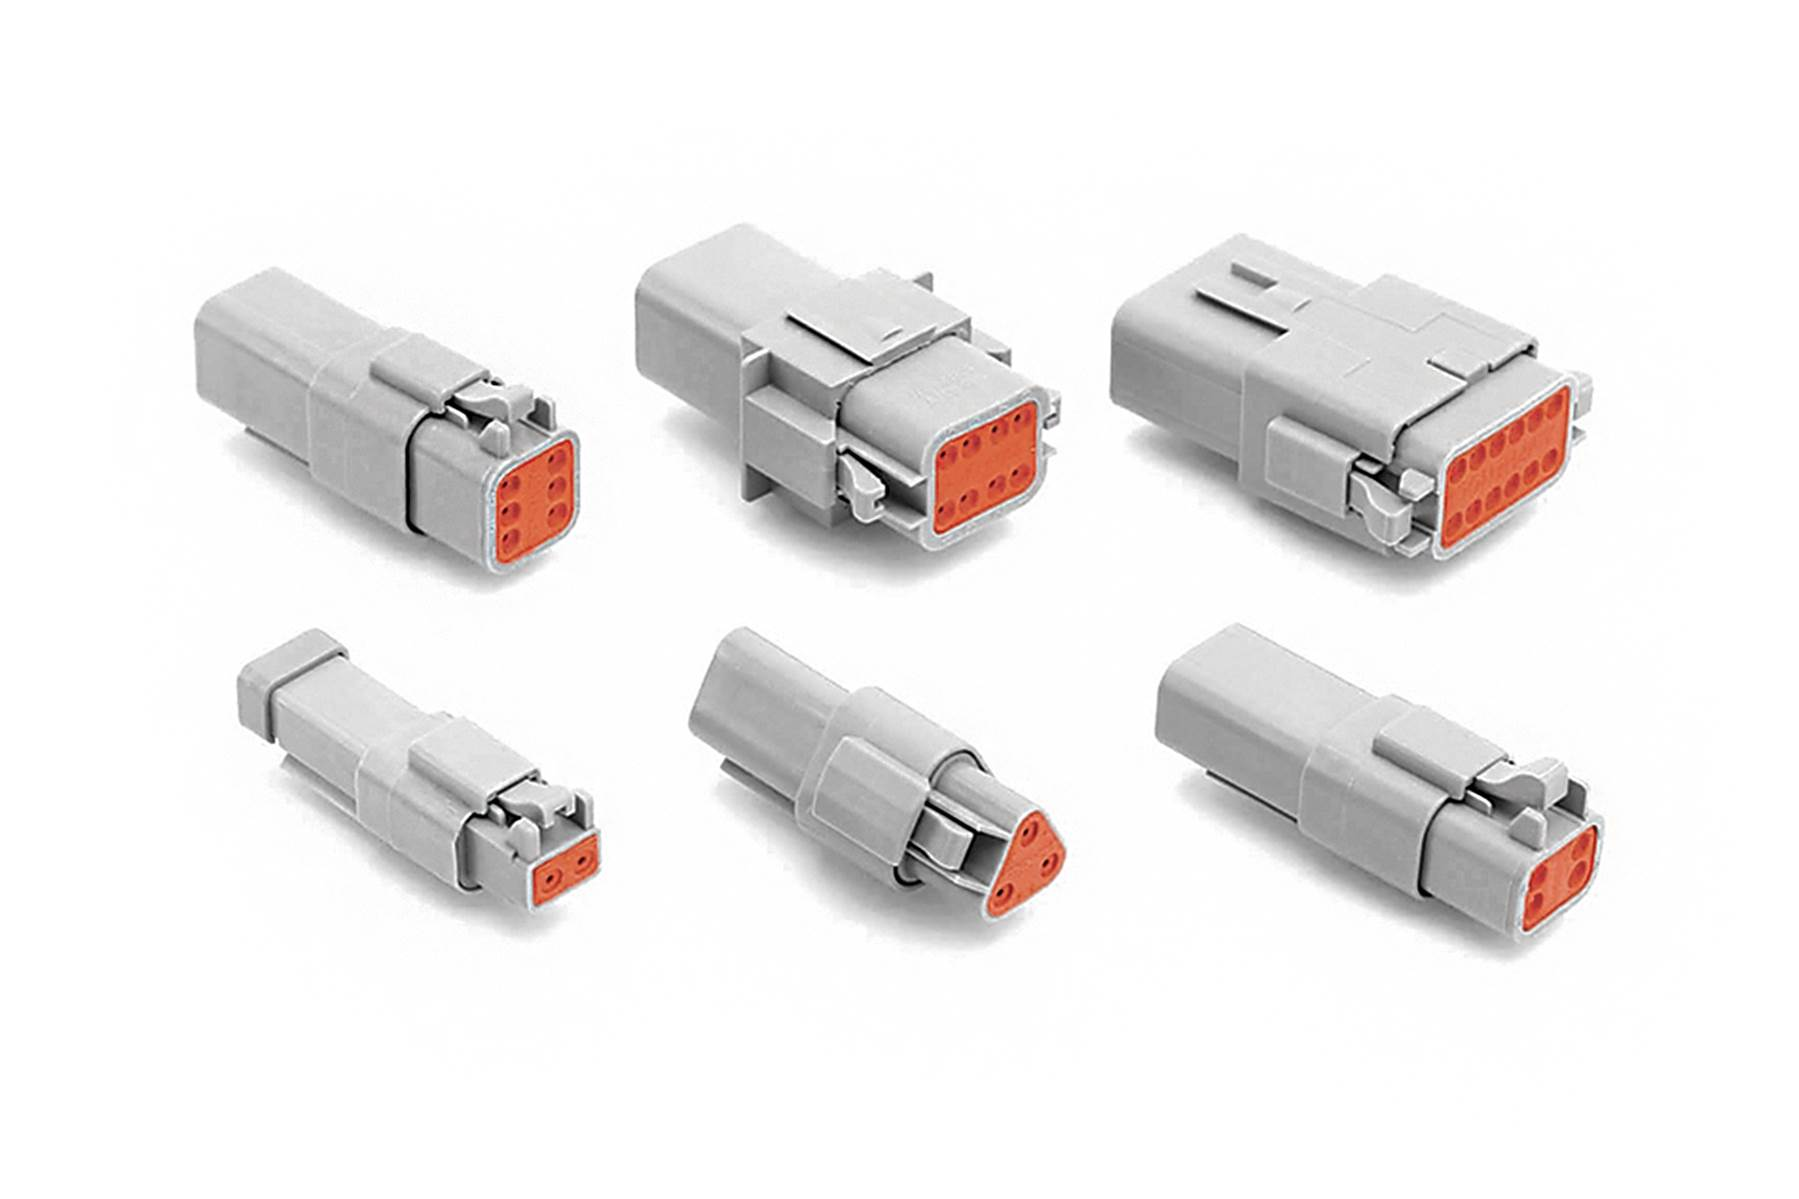 AT Series - 2-12 Pole Connectors